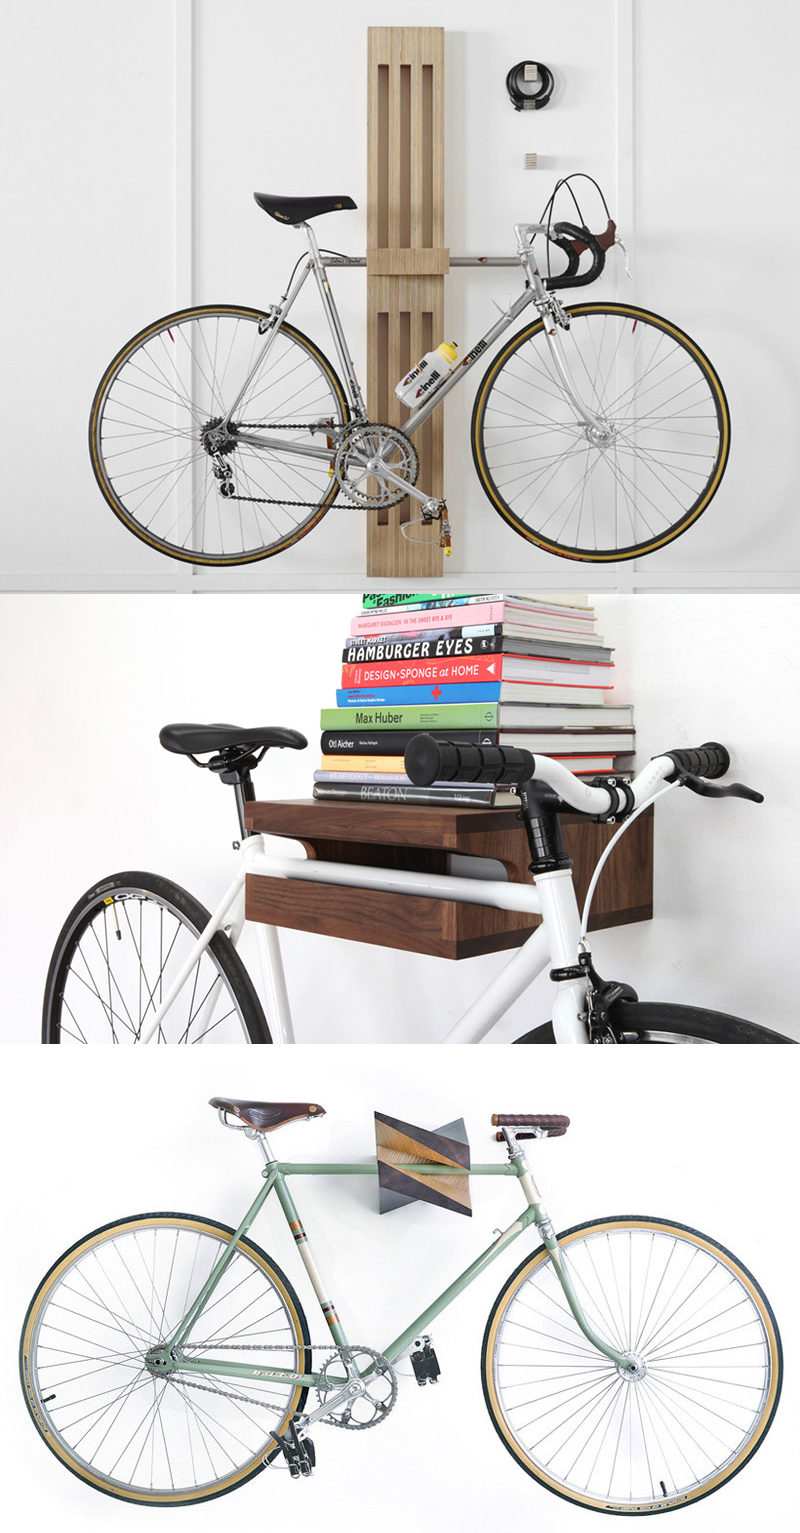 20 creative bike storage ideas for small spaces home design lover - Bike storage small space design ...